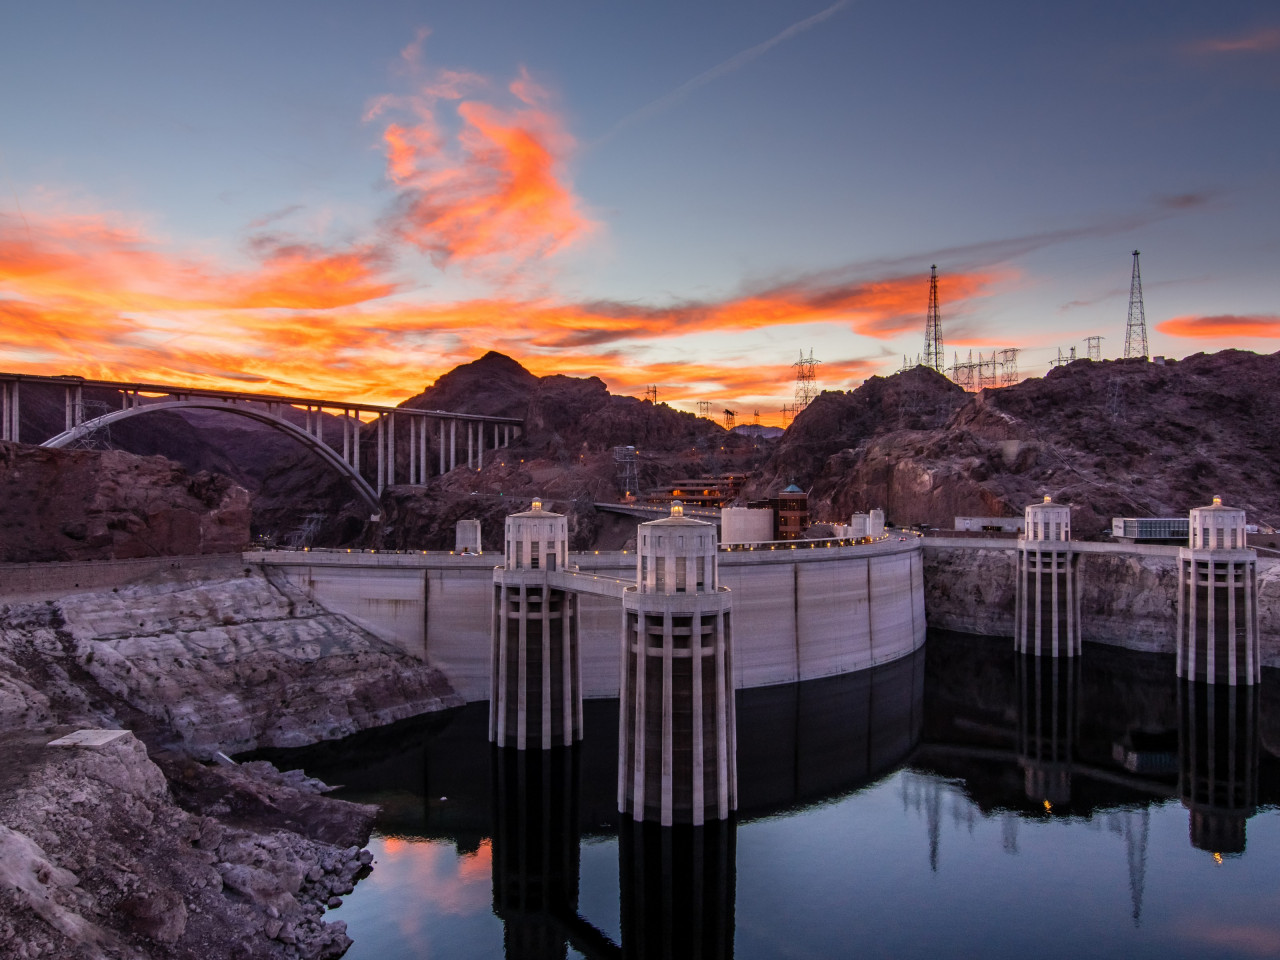 Hoover Dam at sunset wallpaper 1280x960